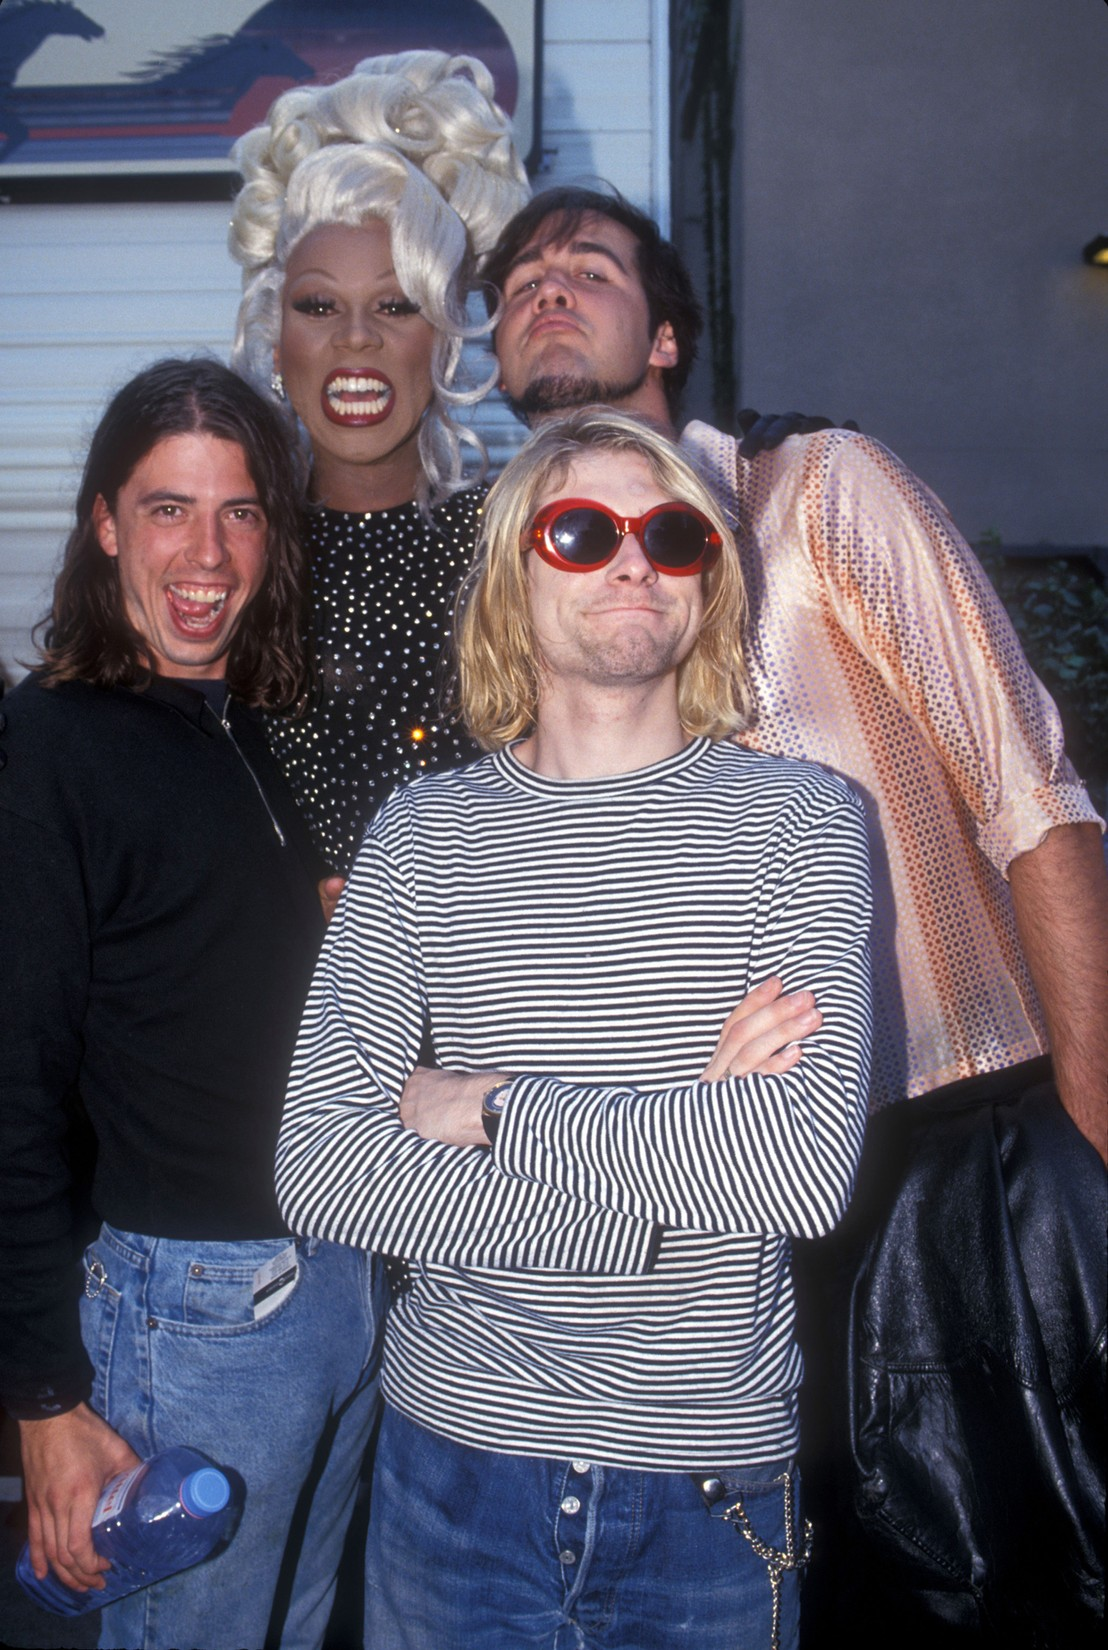 RuPaul-with-Dave-Grohl-Kurt-Cobain-and-Krist-Novoselic-of-Nirvana-MTV-VMAs-1993-billboard-1240-1108x1650